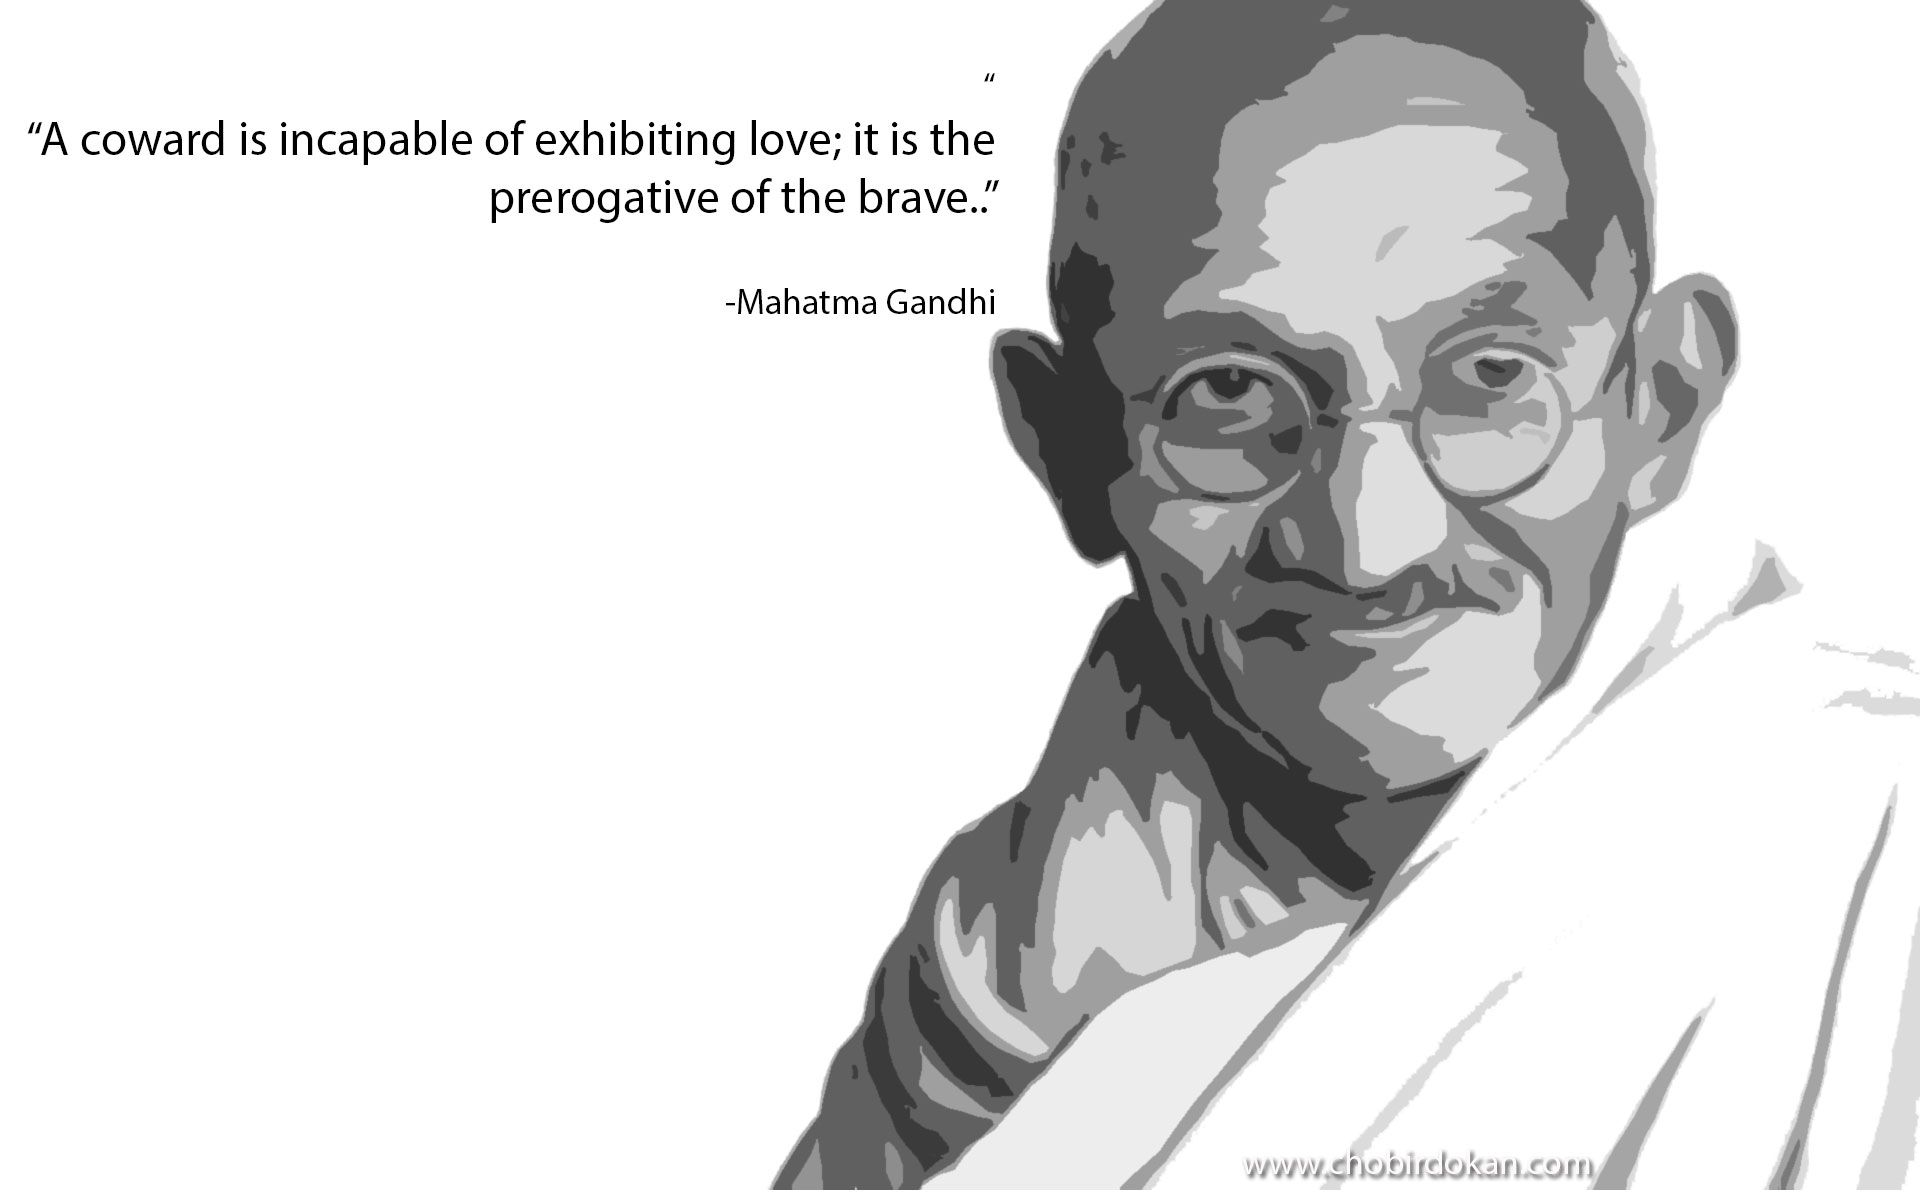 Gandhi Quotes On Love Adorable Here Are Some Mahatma Gandhi Short Quotes On Love And Life